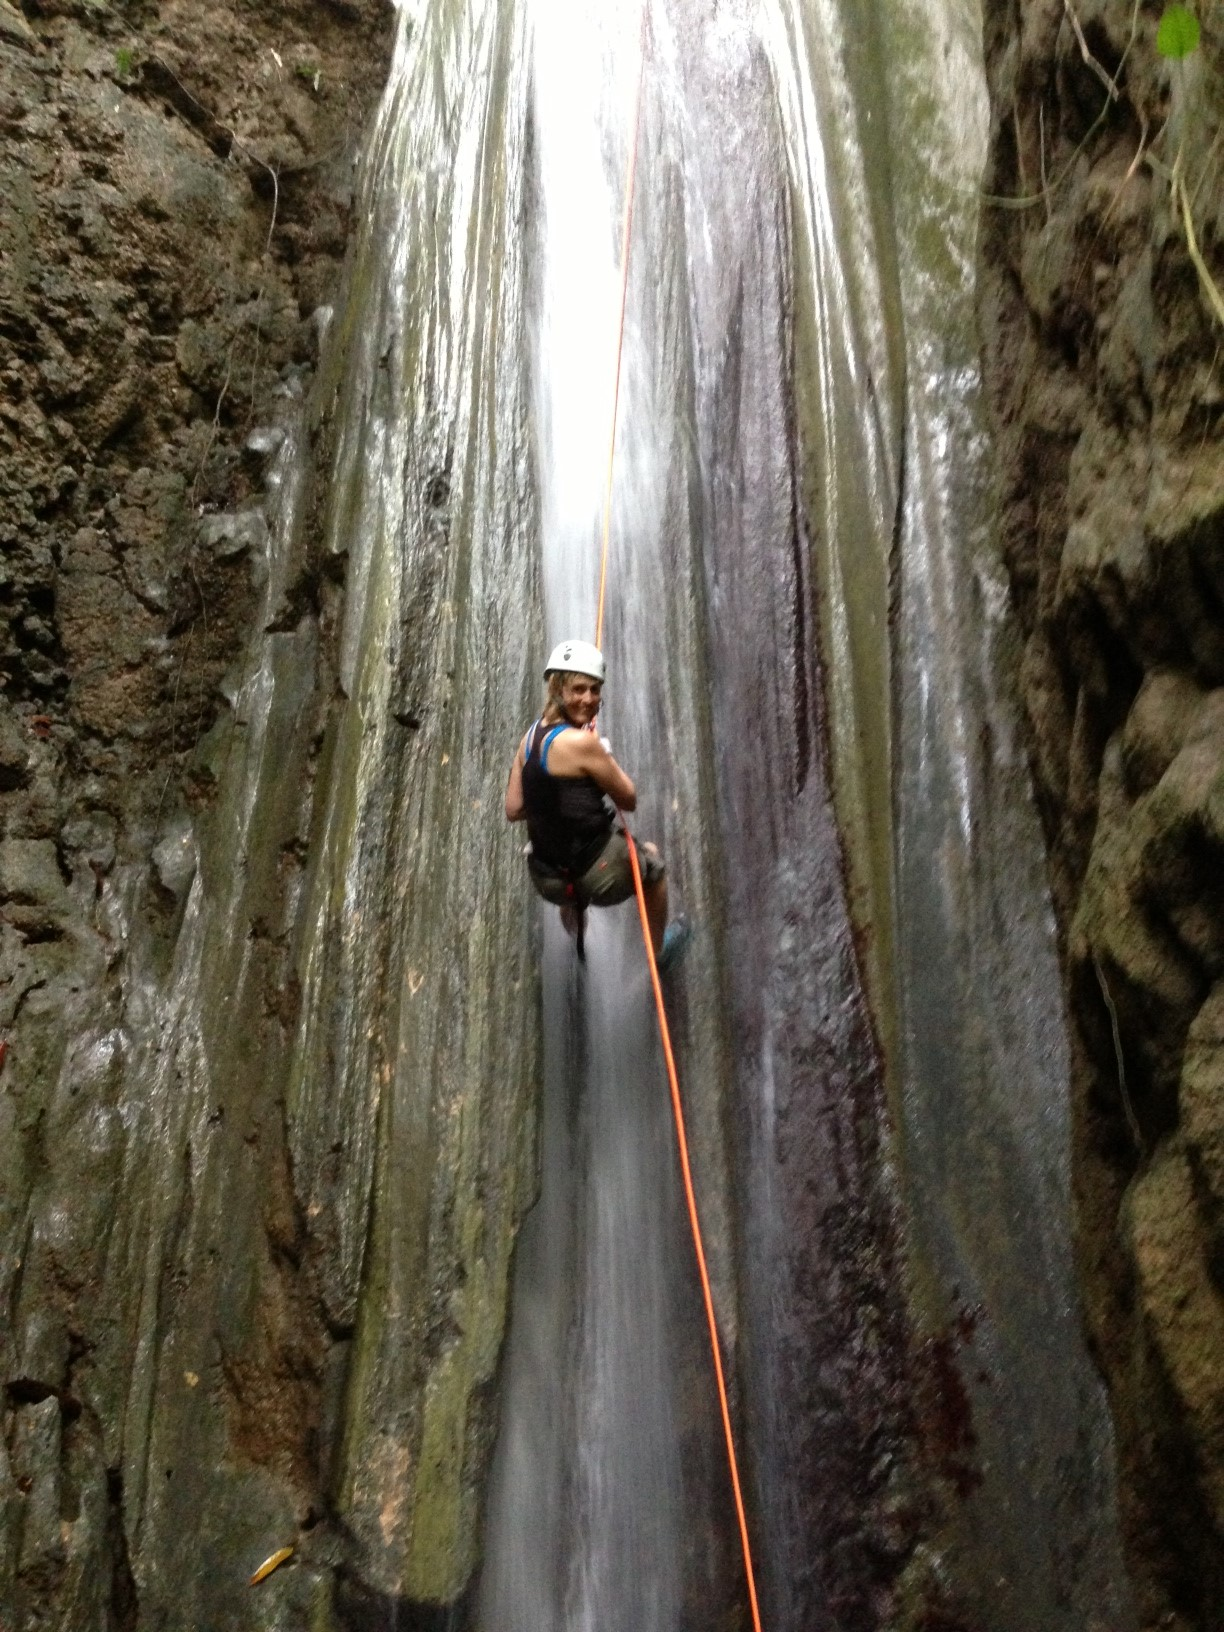 Waterfall rappelling at El Remanso (4th waterfall).